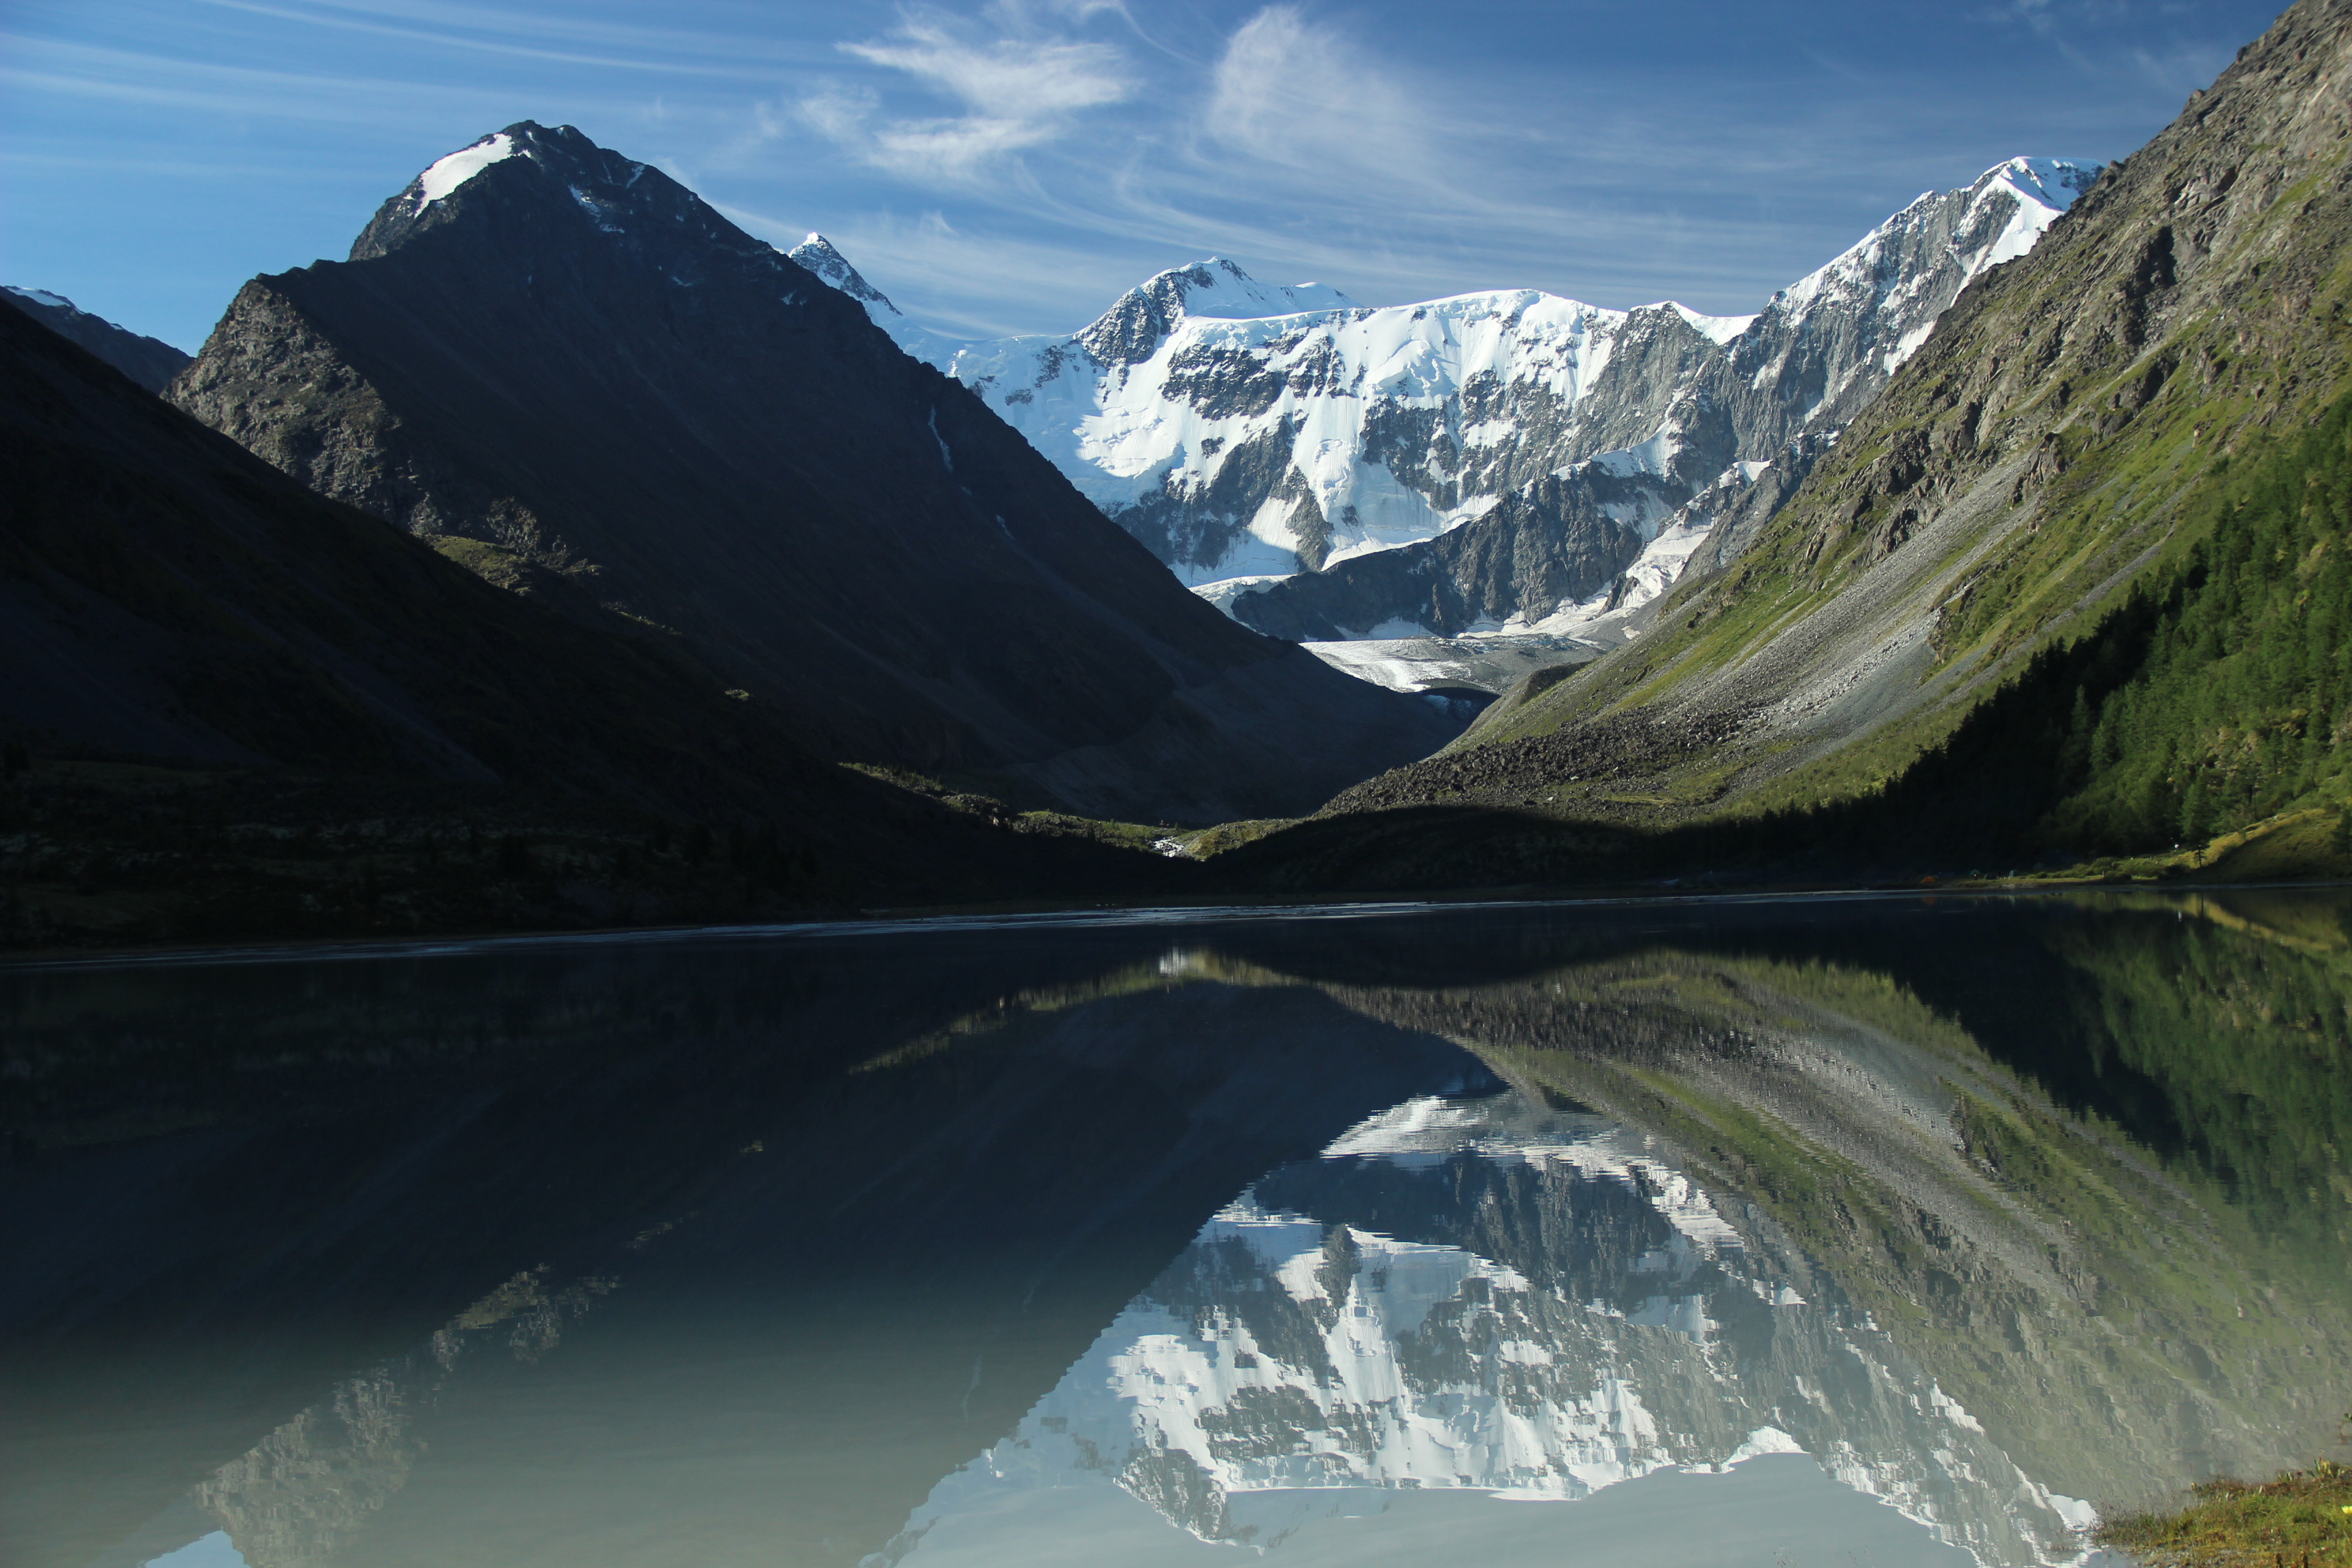 Lake Manzherok, Mountain Altai: photos, recreation centers 30